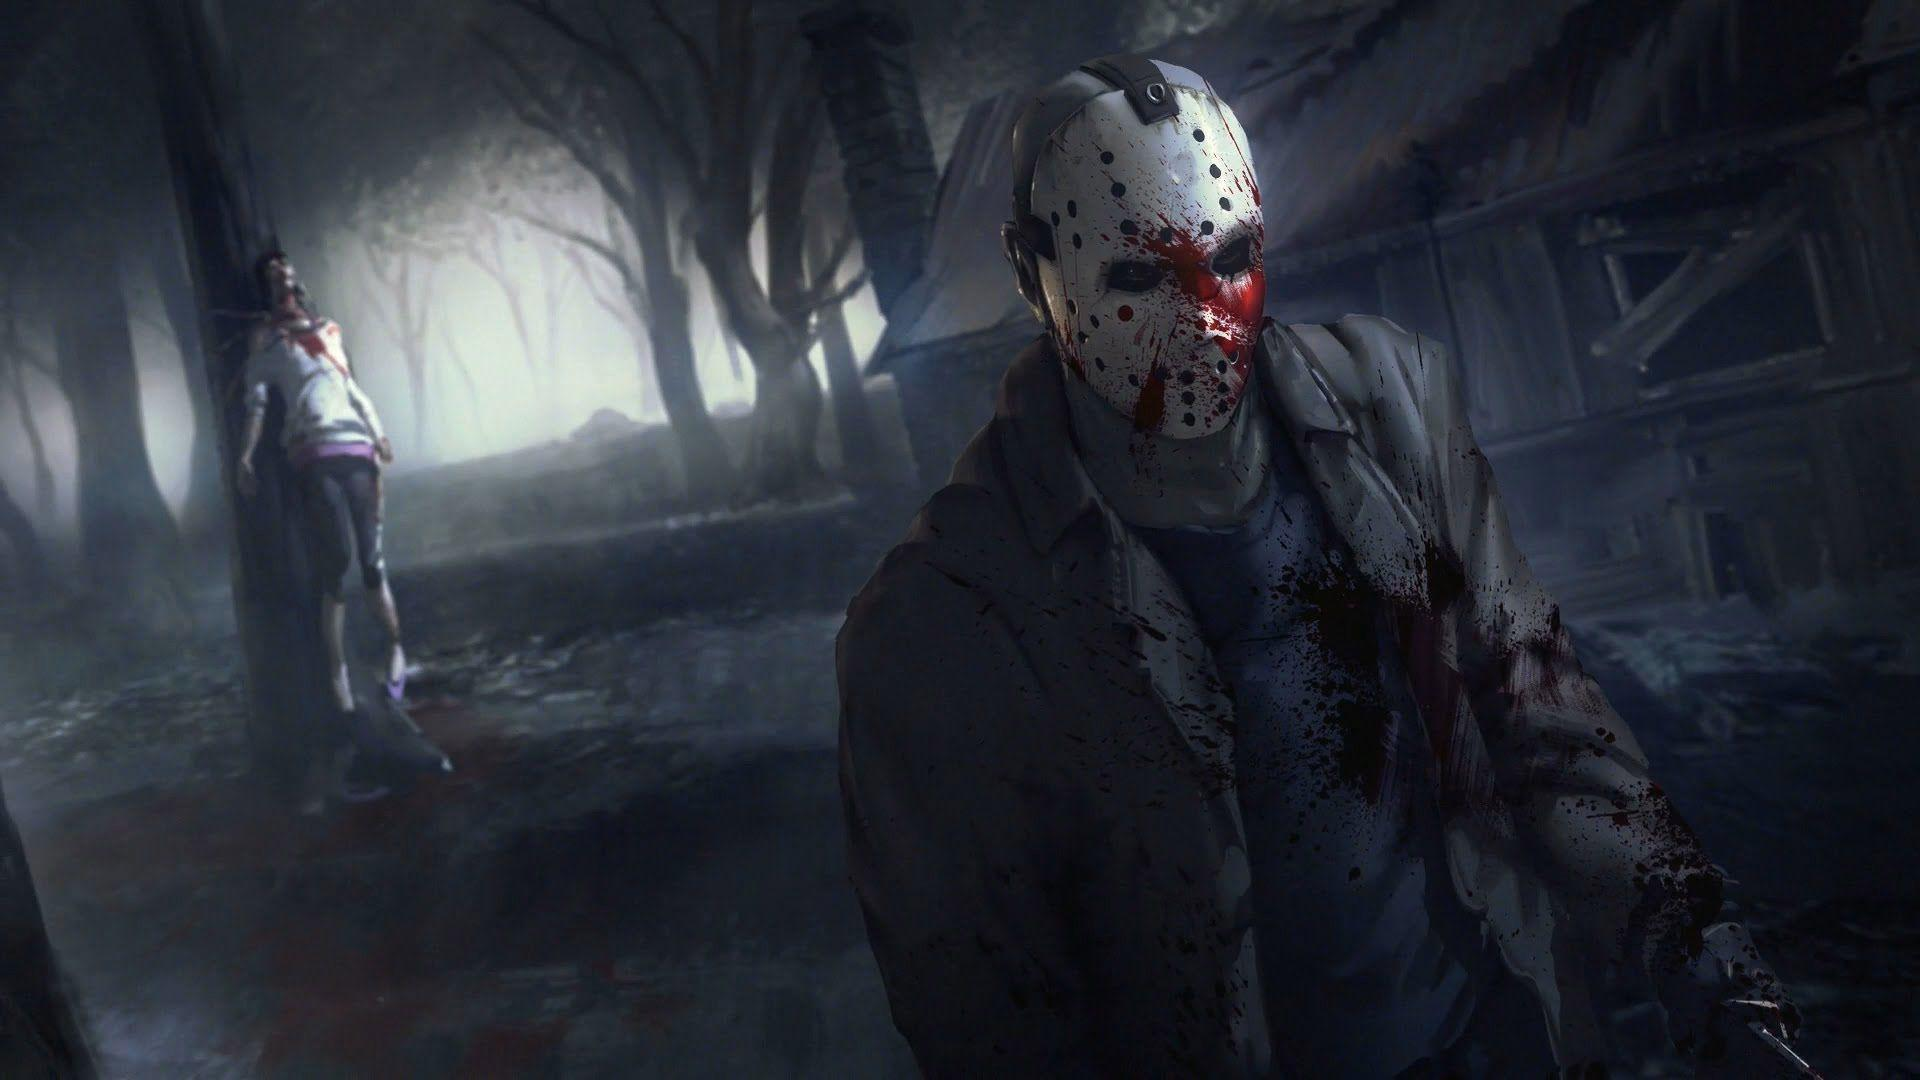 Free Friday the 13th Wallpapers in 1920x1080